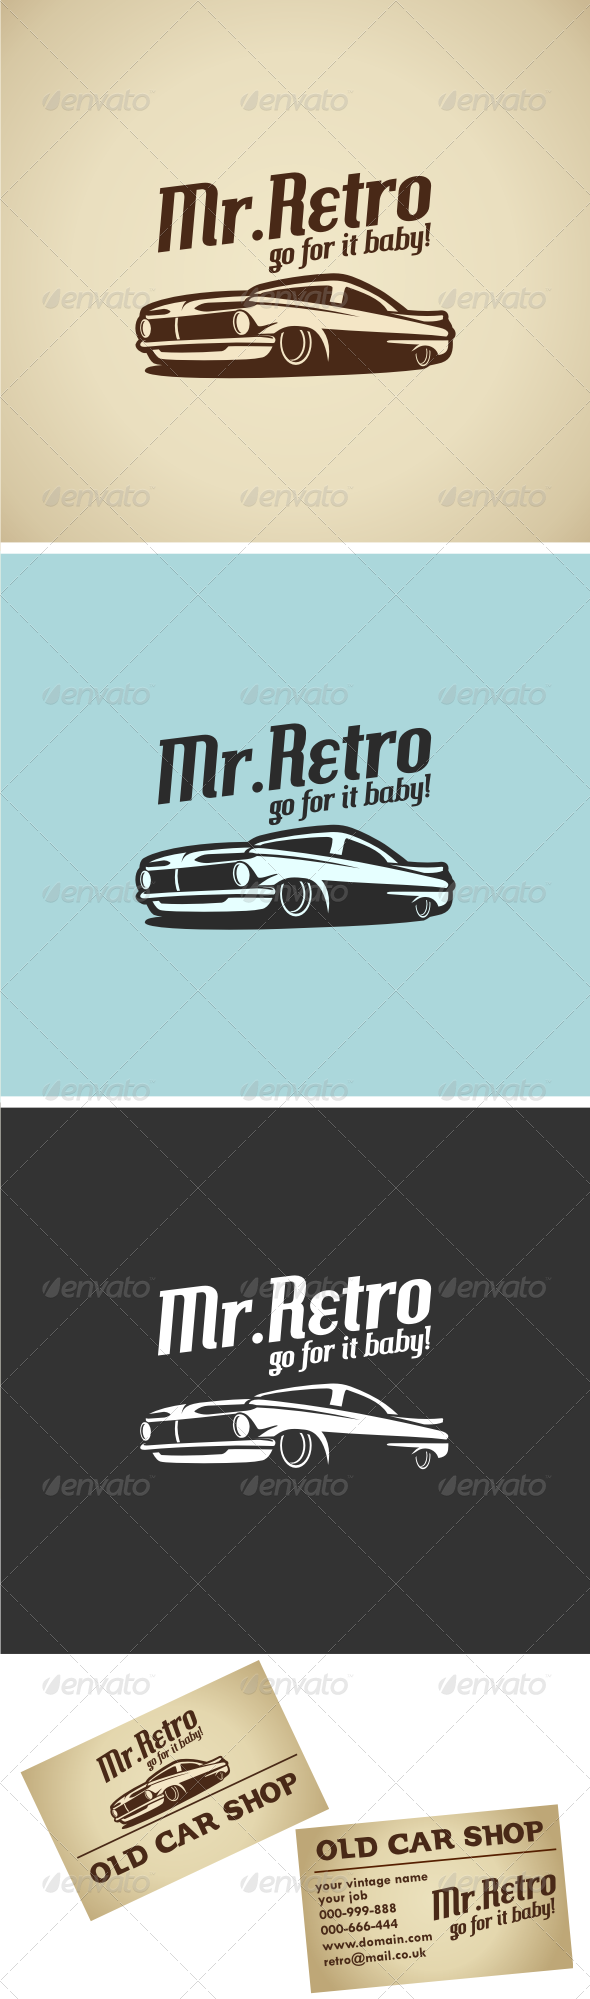 Retro Car V.1 Logo Template - Objects Logo Templates